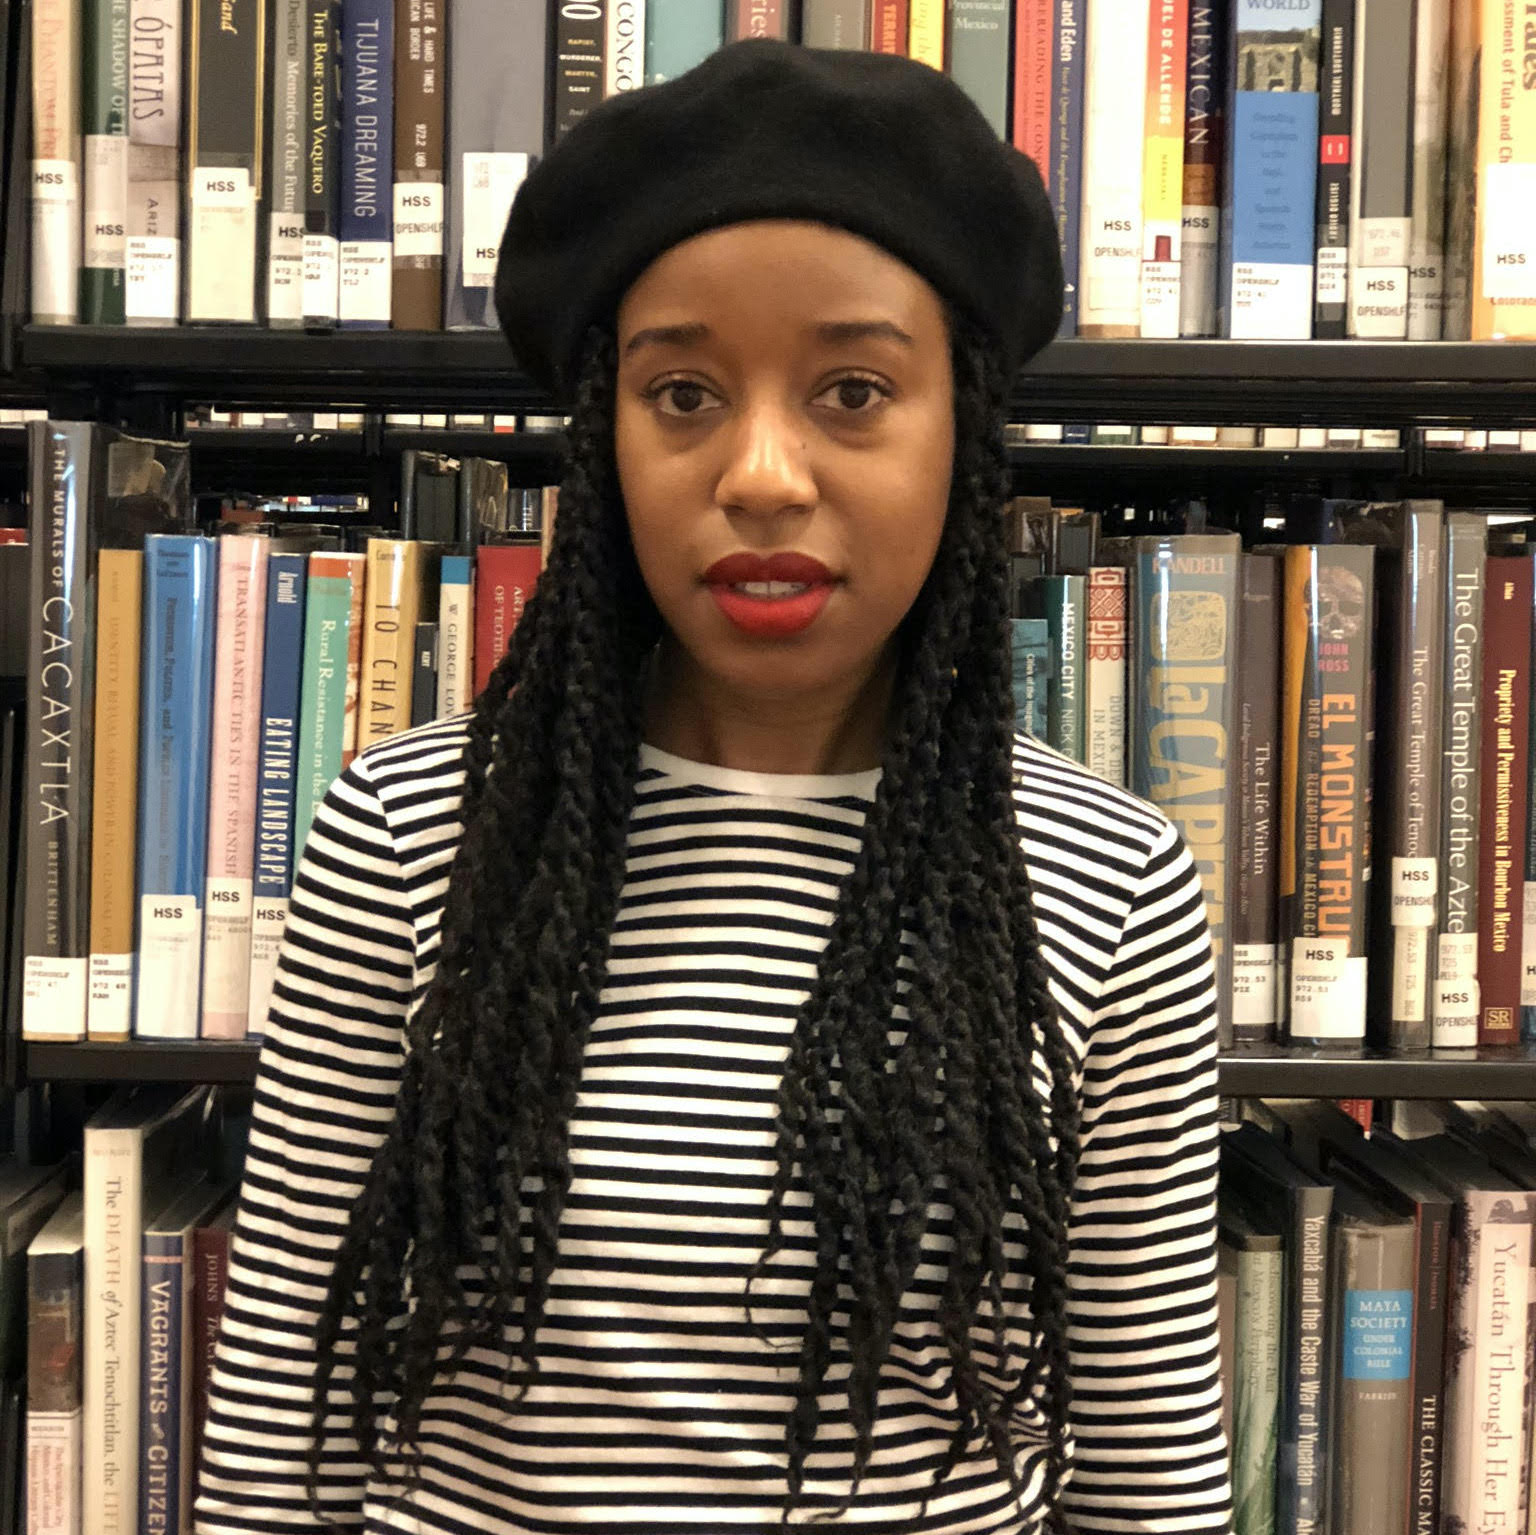 Simone Wright wearing a black hat and striped t-shirt smiling at the camera in front of a bookshelf.